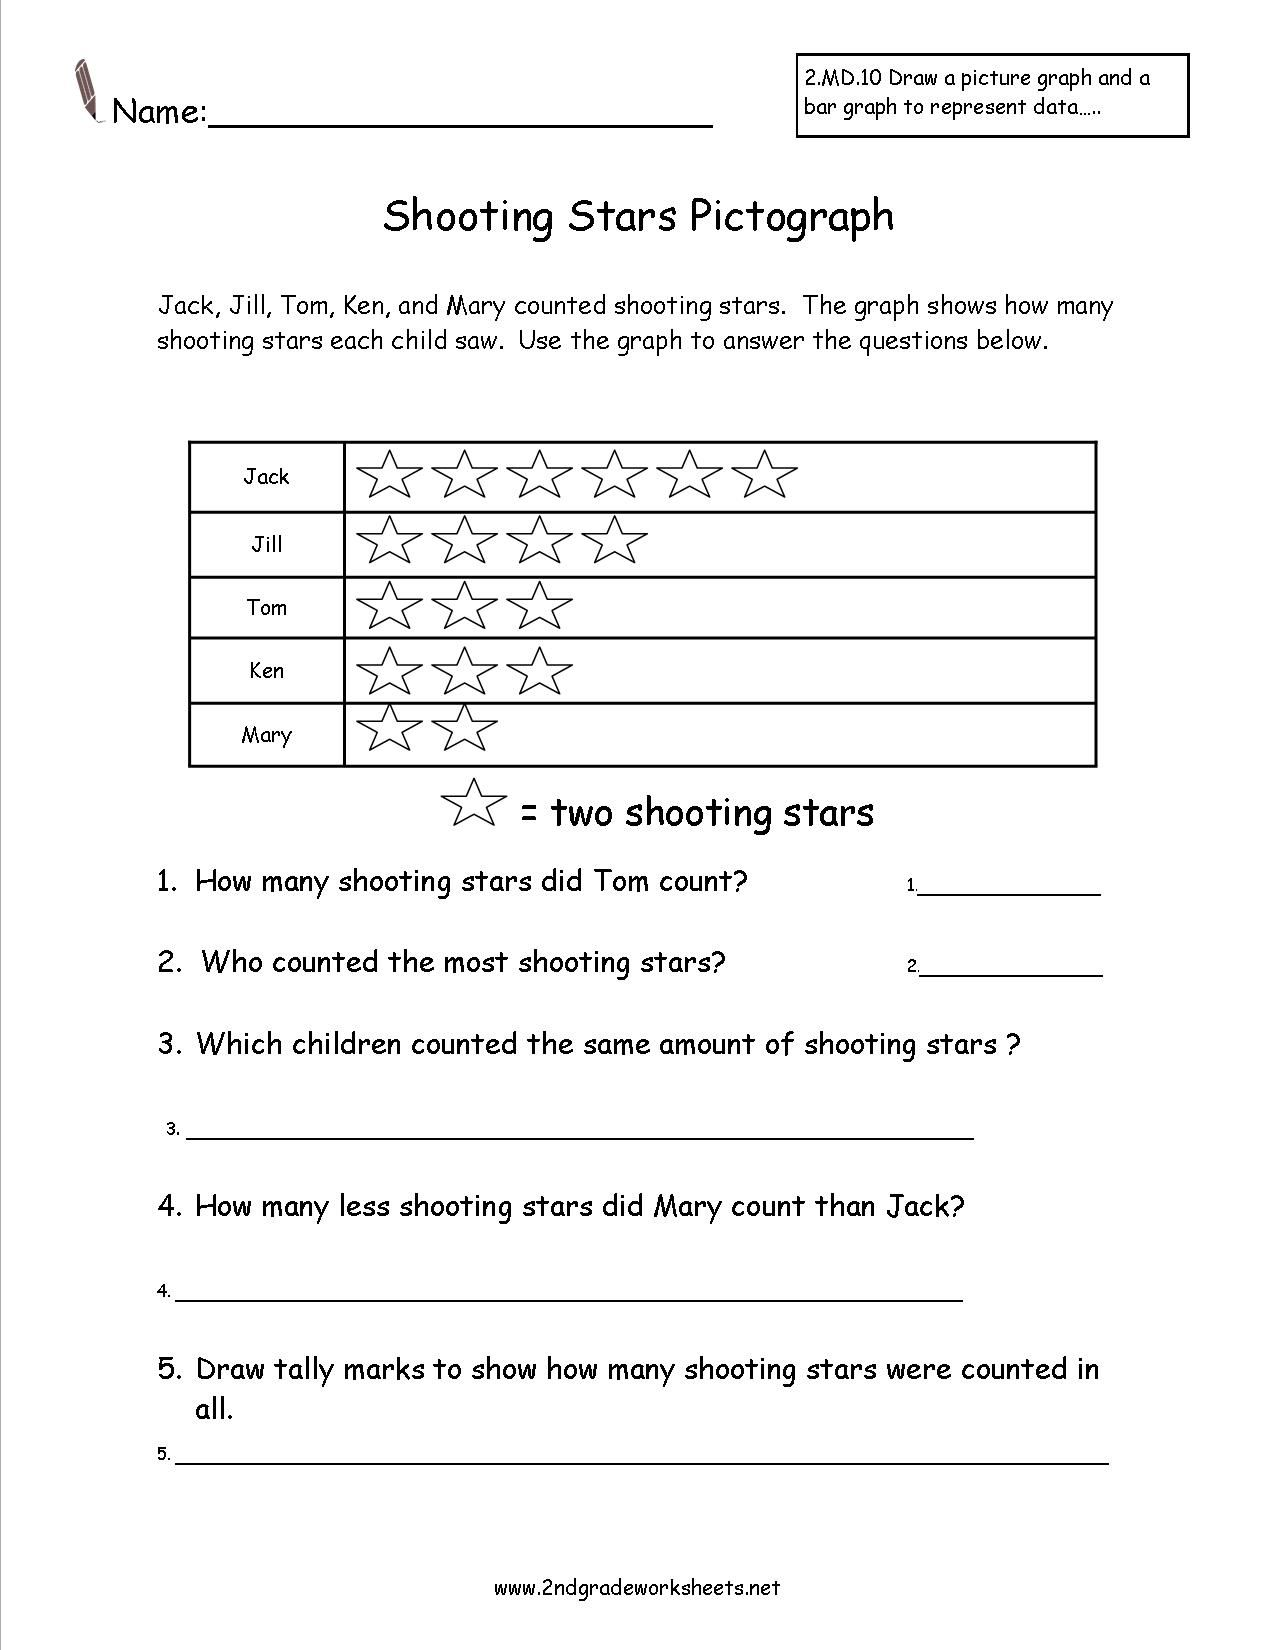 hight resolution of shooting stars pictograph worksheet   Third grade worksheets